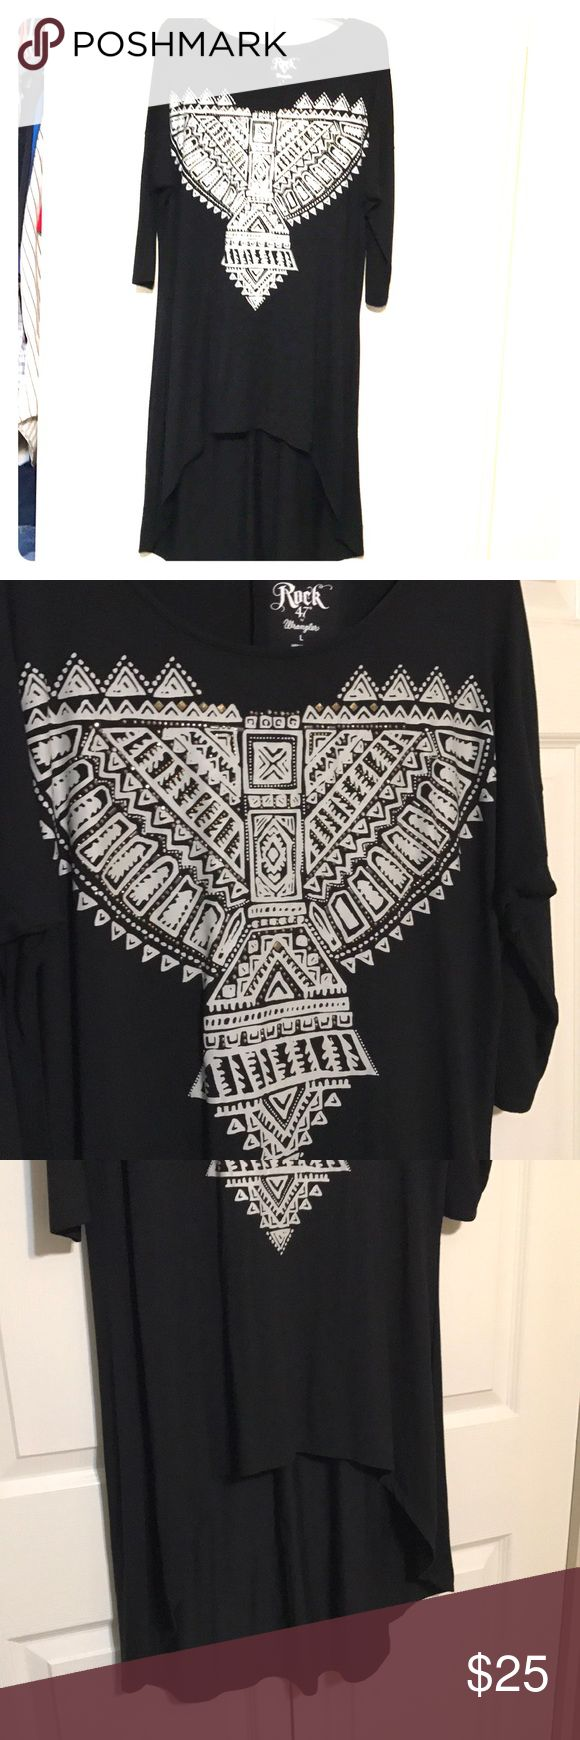 Hi-Lo Dress Black Large Rock 47 HiLo AzTec black dress NWOT very soft very cute w Western boots or dressy boots. Design is white with tiny gold studs Rock 47 by wrangler Dresses High Low